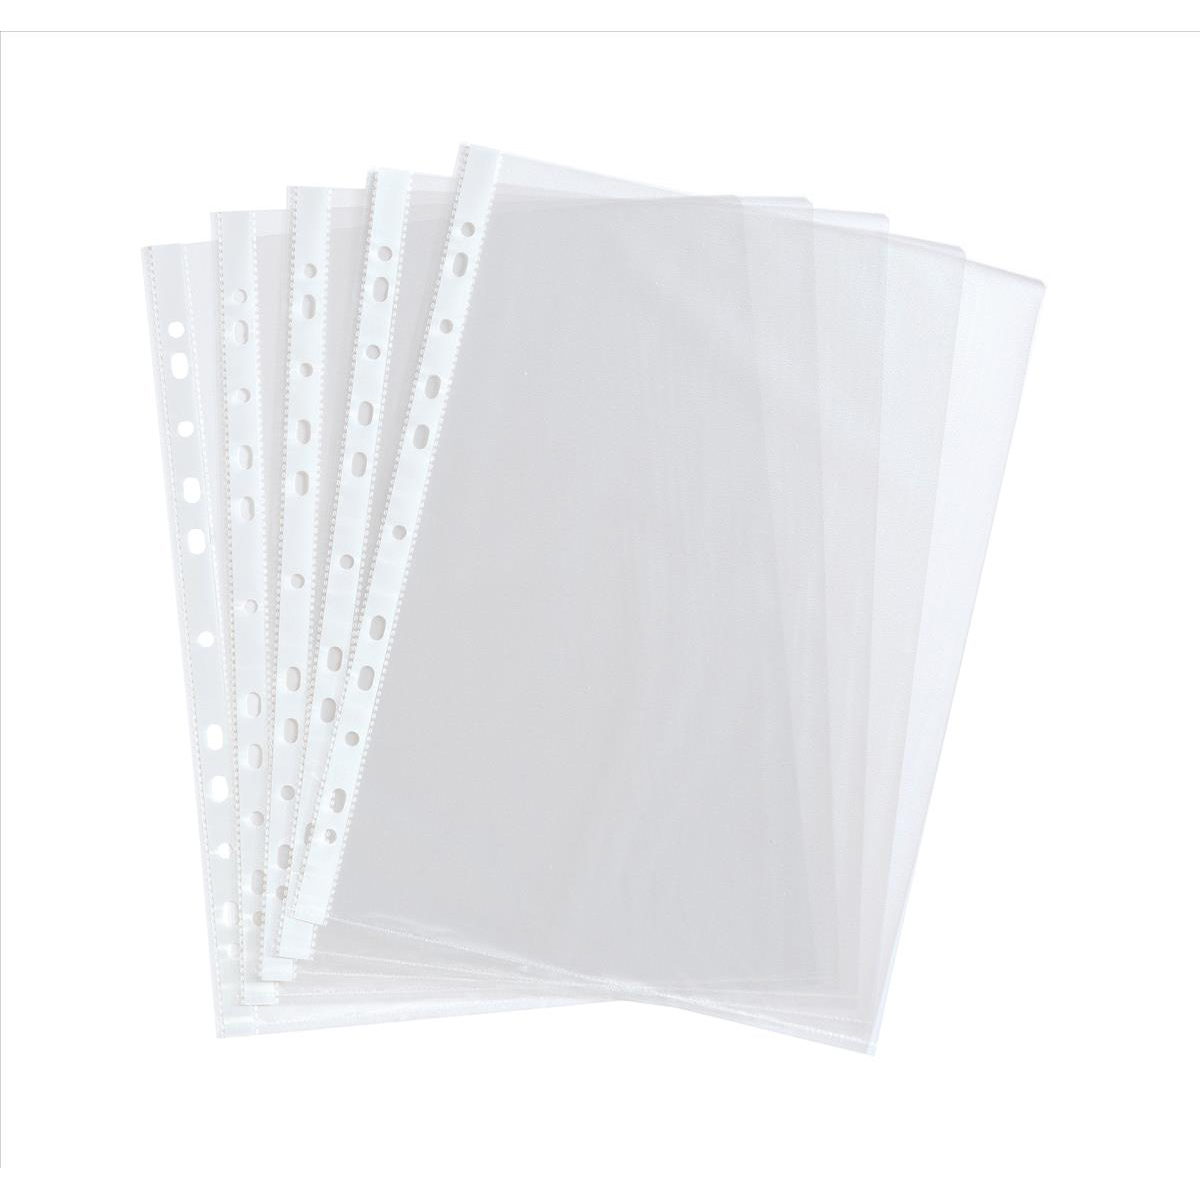 Plastic Pockets 5 Star Value Punched Pocket Polypropylene Embossed Top-opening 40 Microns A4 Clear Pack 100